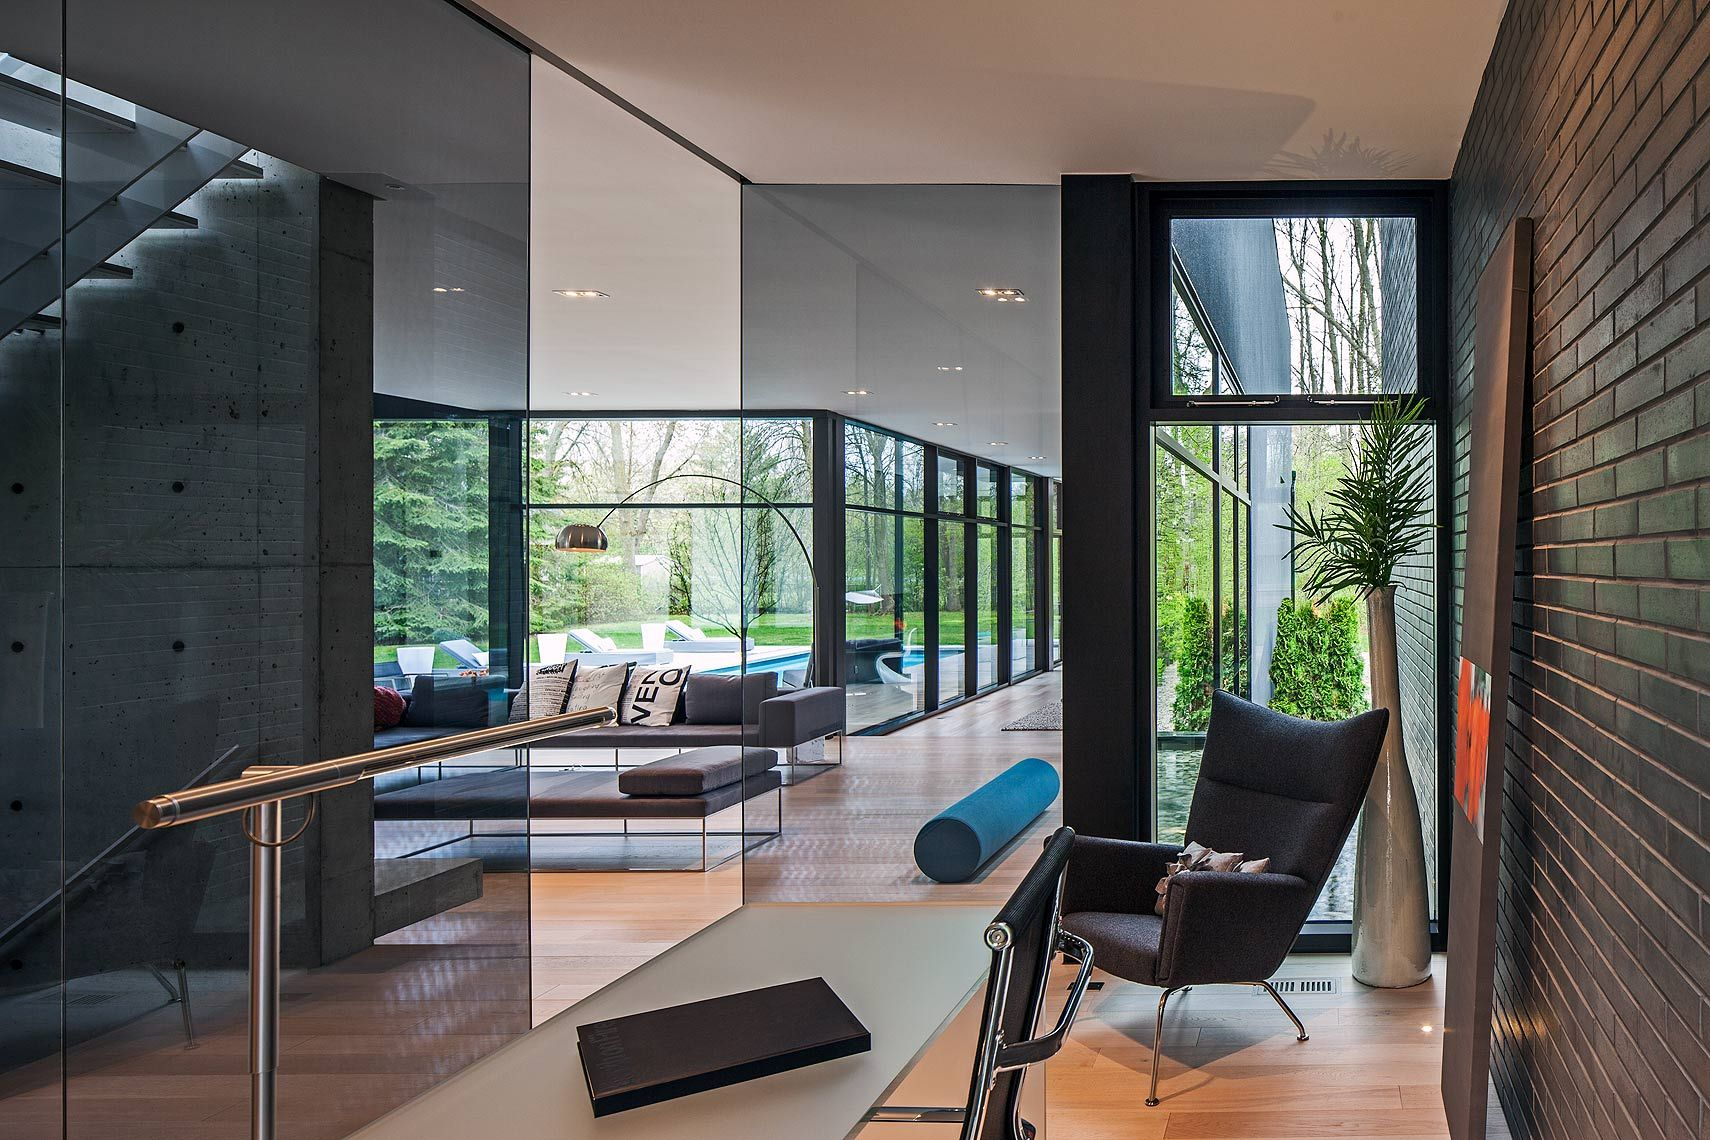 Cutting edge family home in South West Oakville, designed by Guido Costantino Architect, Interior.